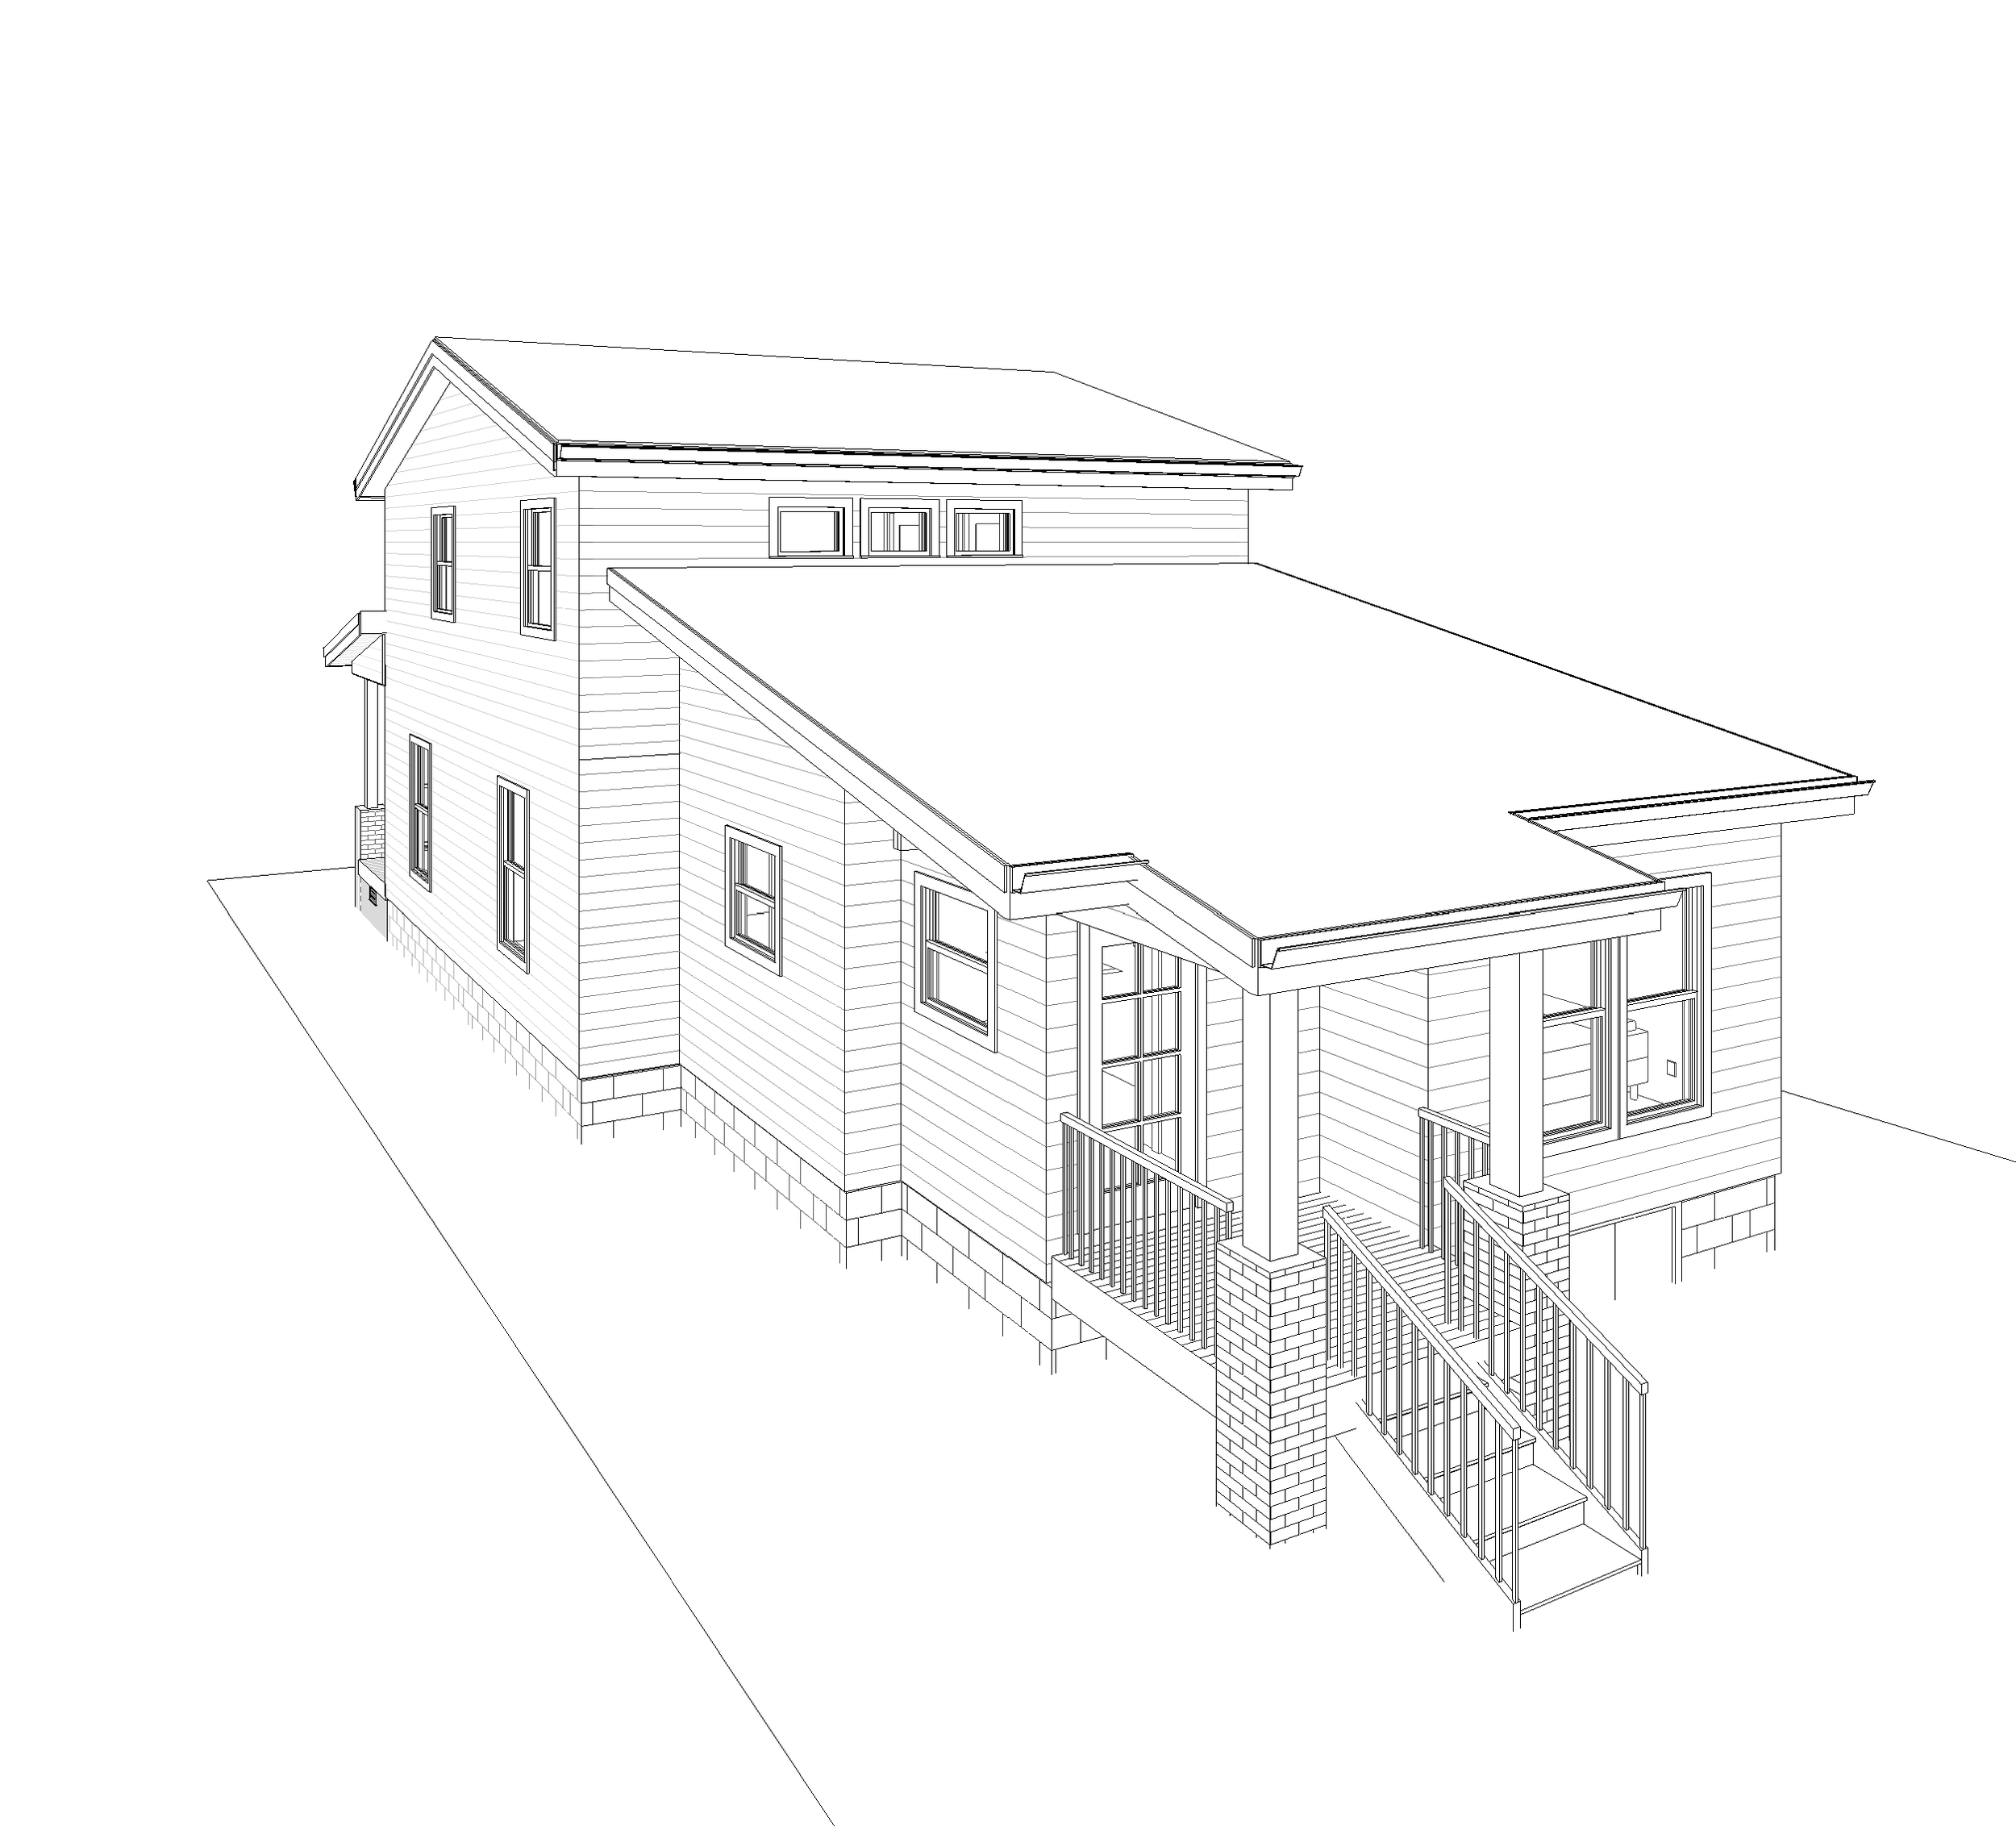 Perspective showing rear addition